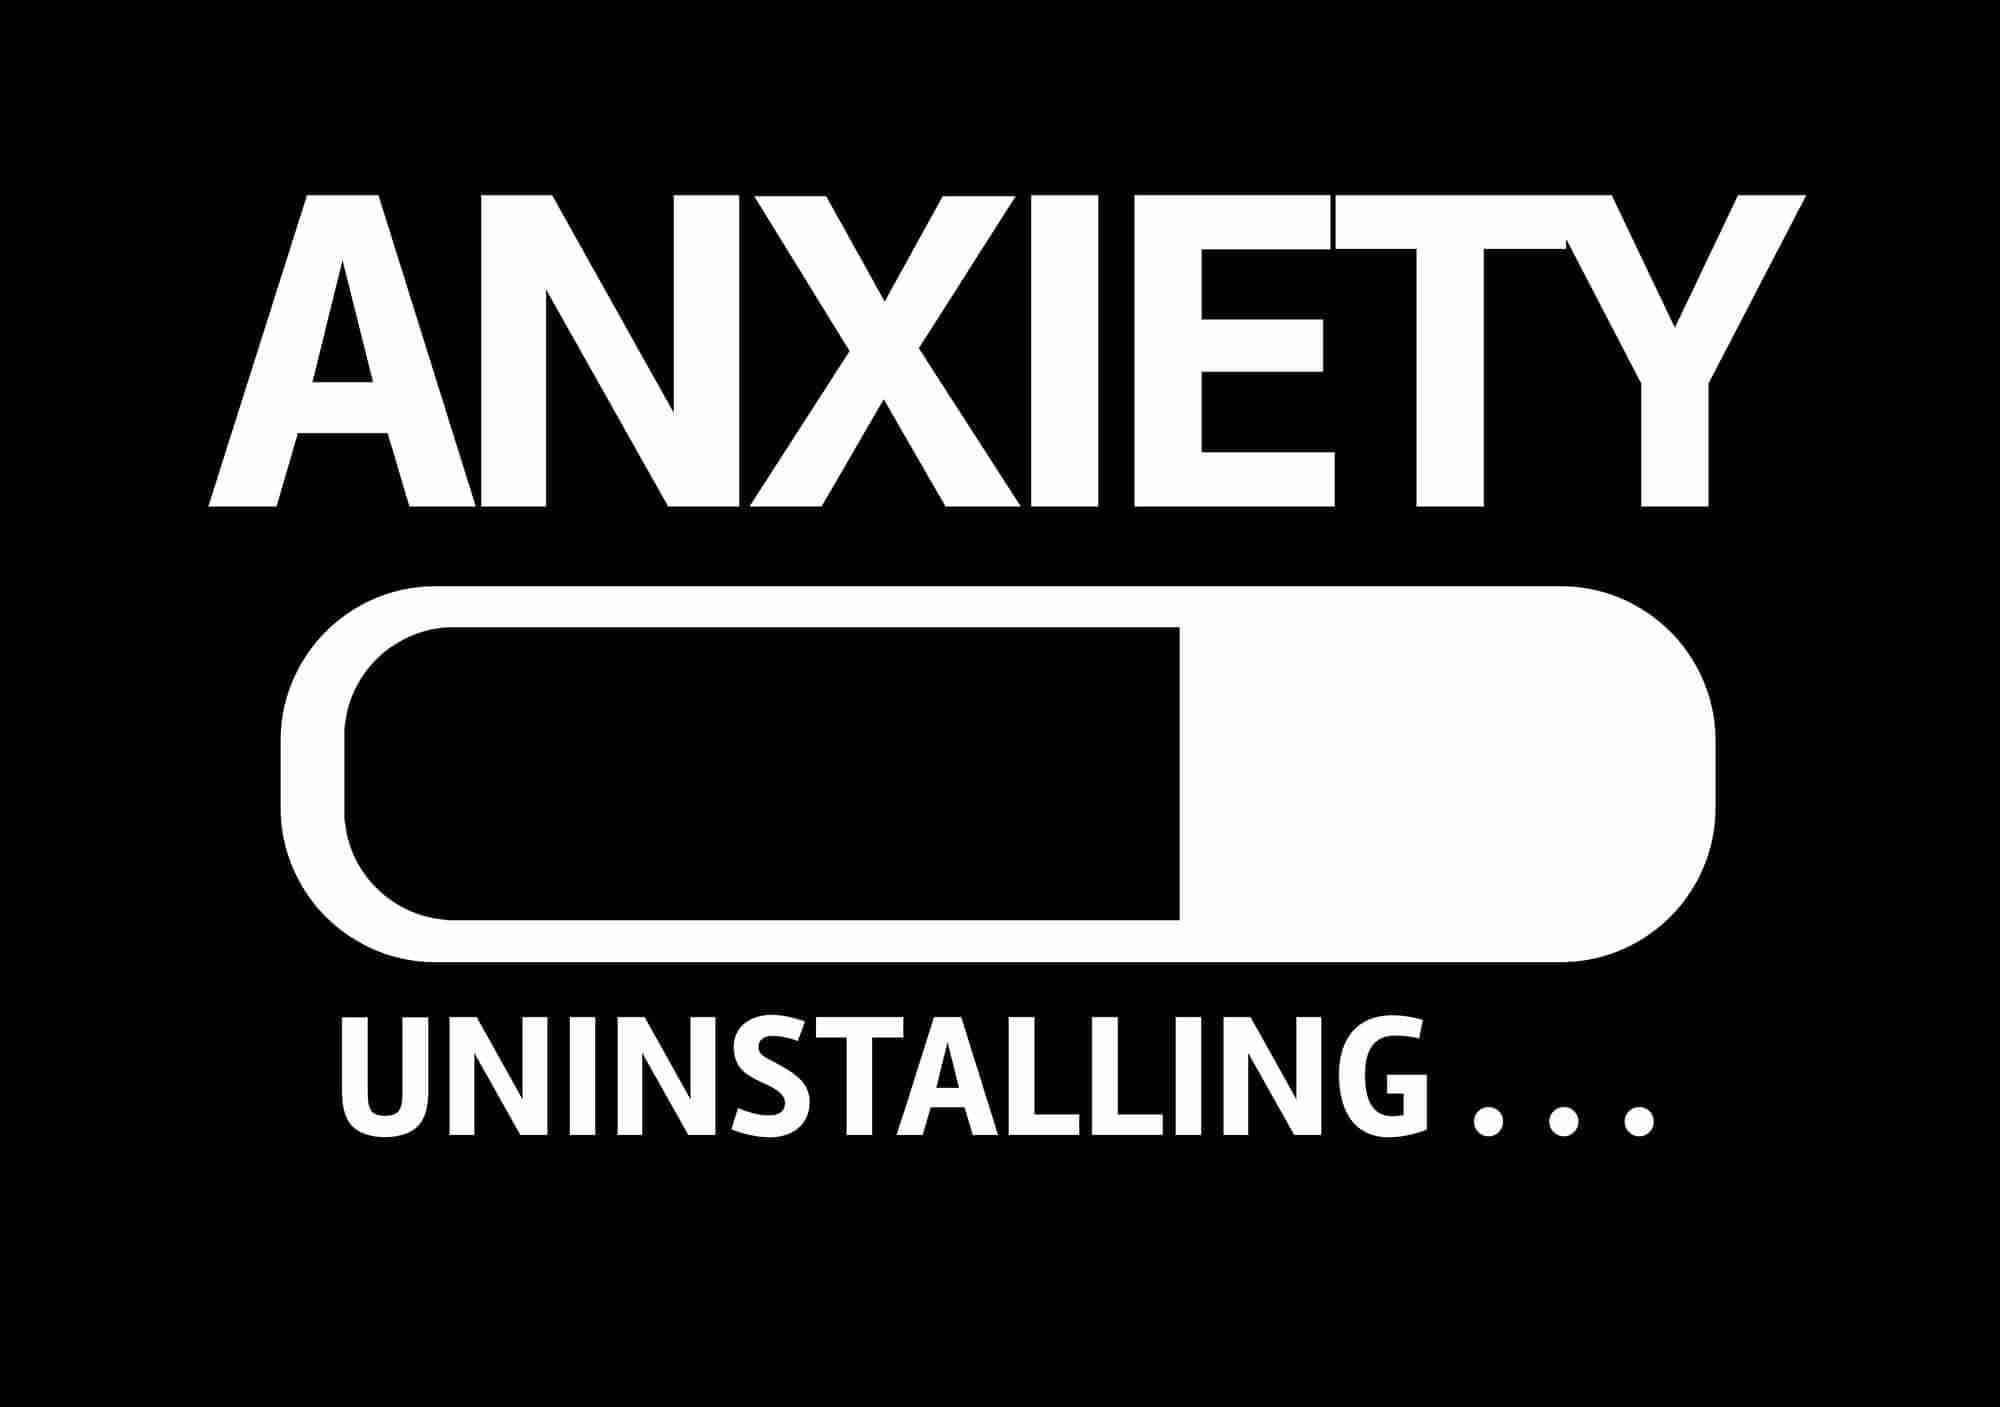 anxiety uninstalling